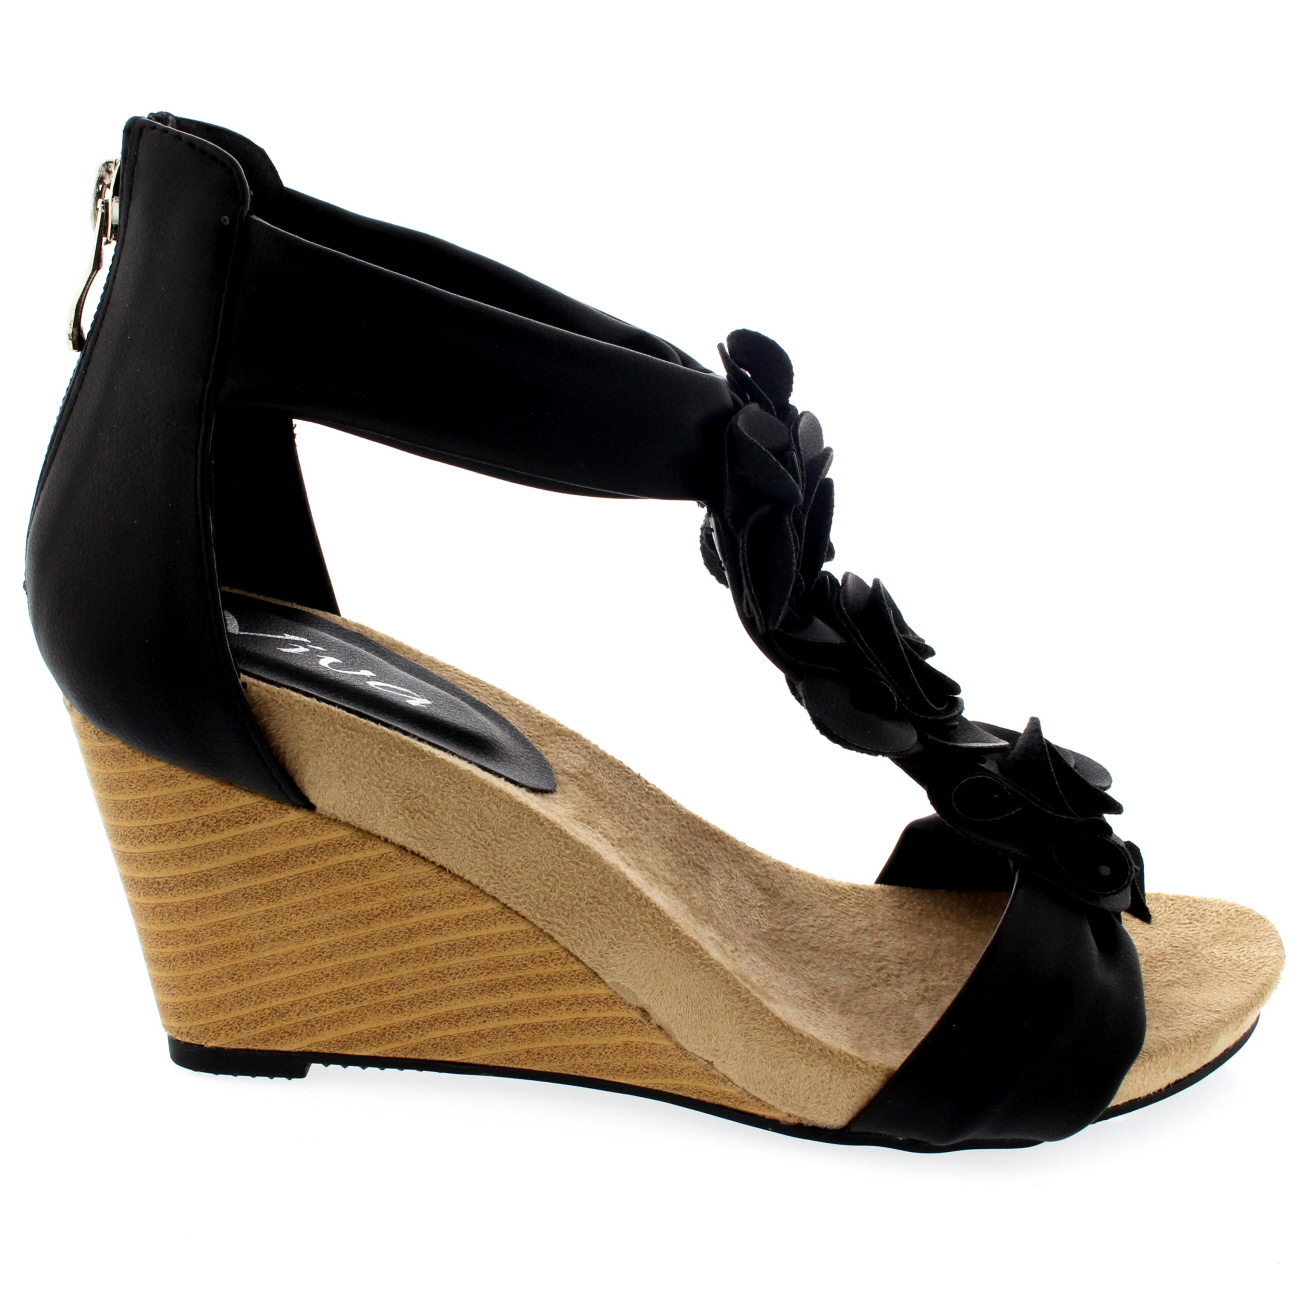 Womens Wedges Shoes Sale: Save Up to 75% Off! Shop custifara.ga's huge selection of Wedges Shoes for Women - Over 2, styles available. FREE Shipping & Exchanges, and a .